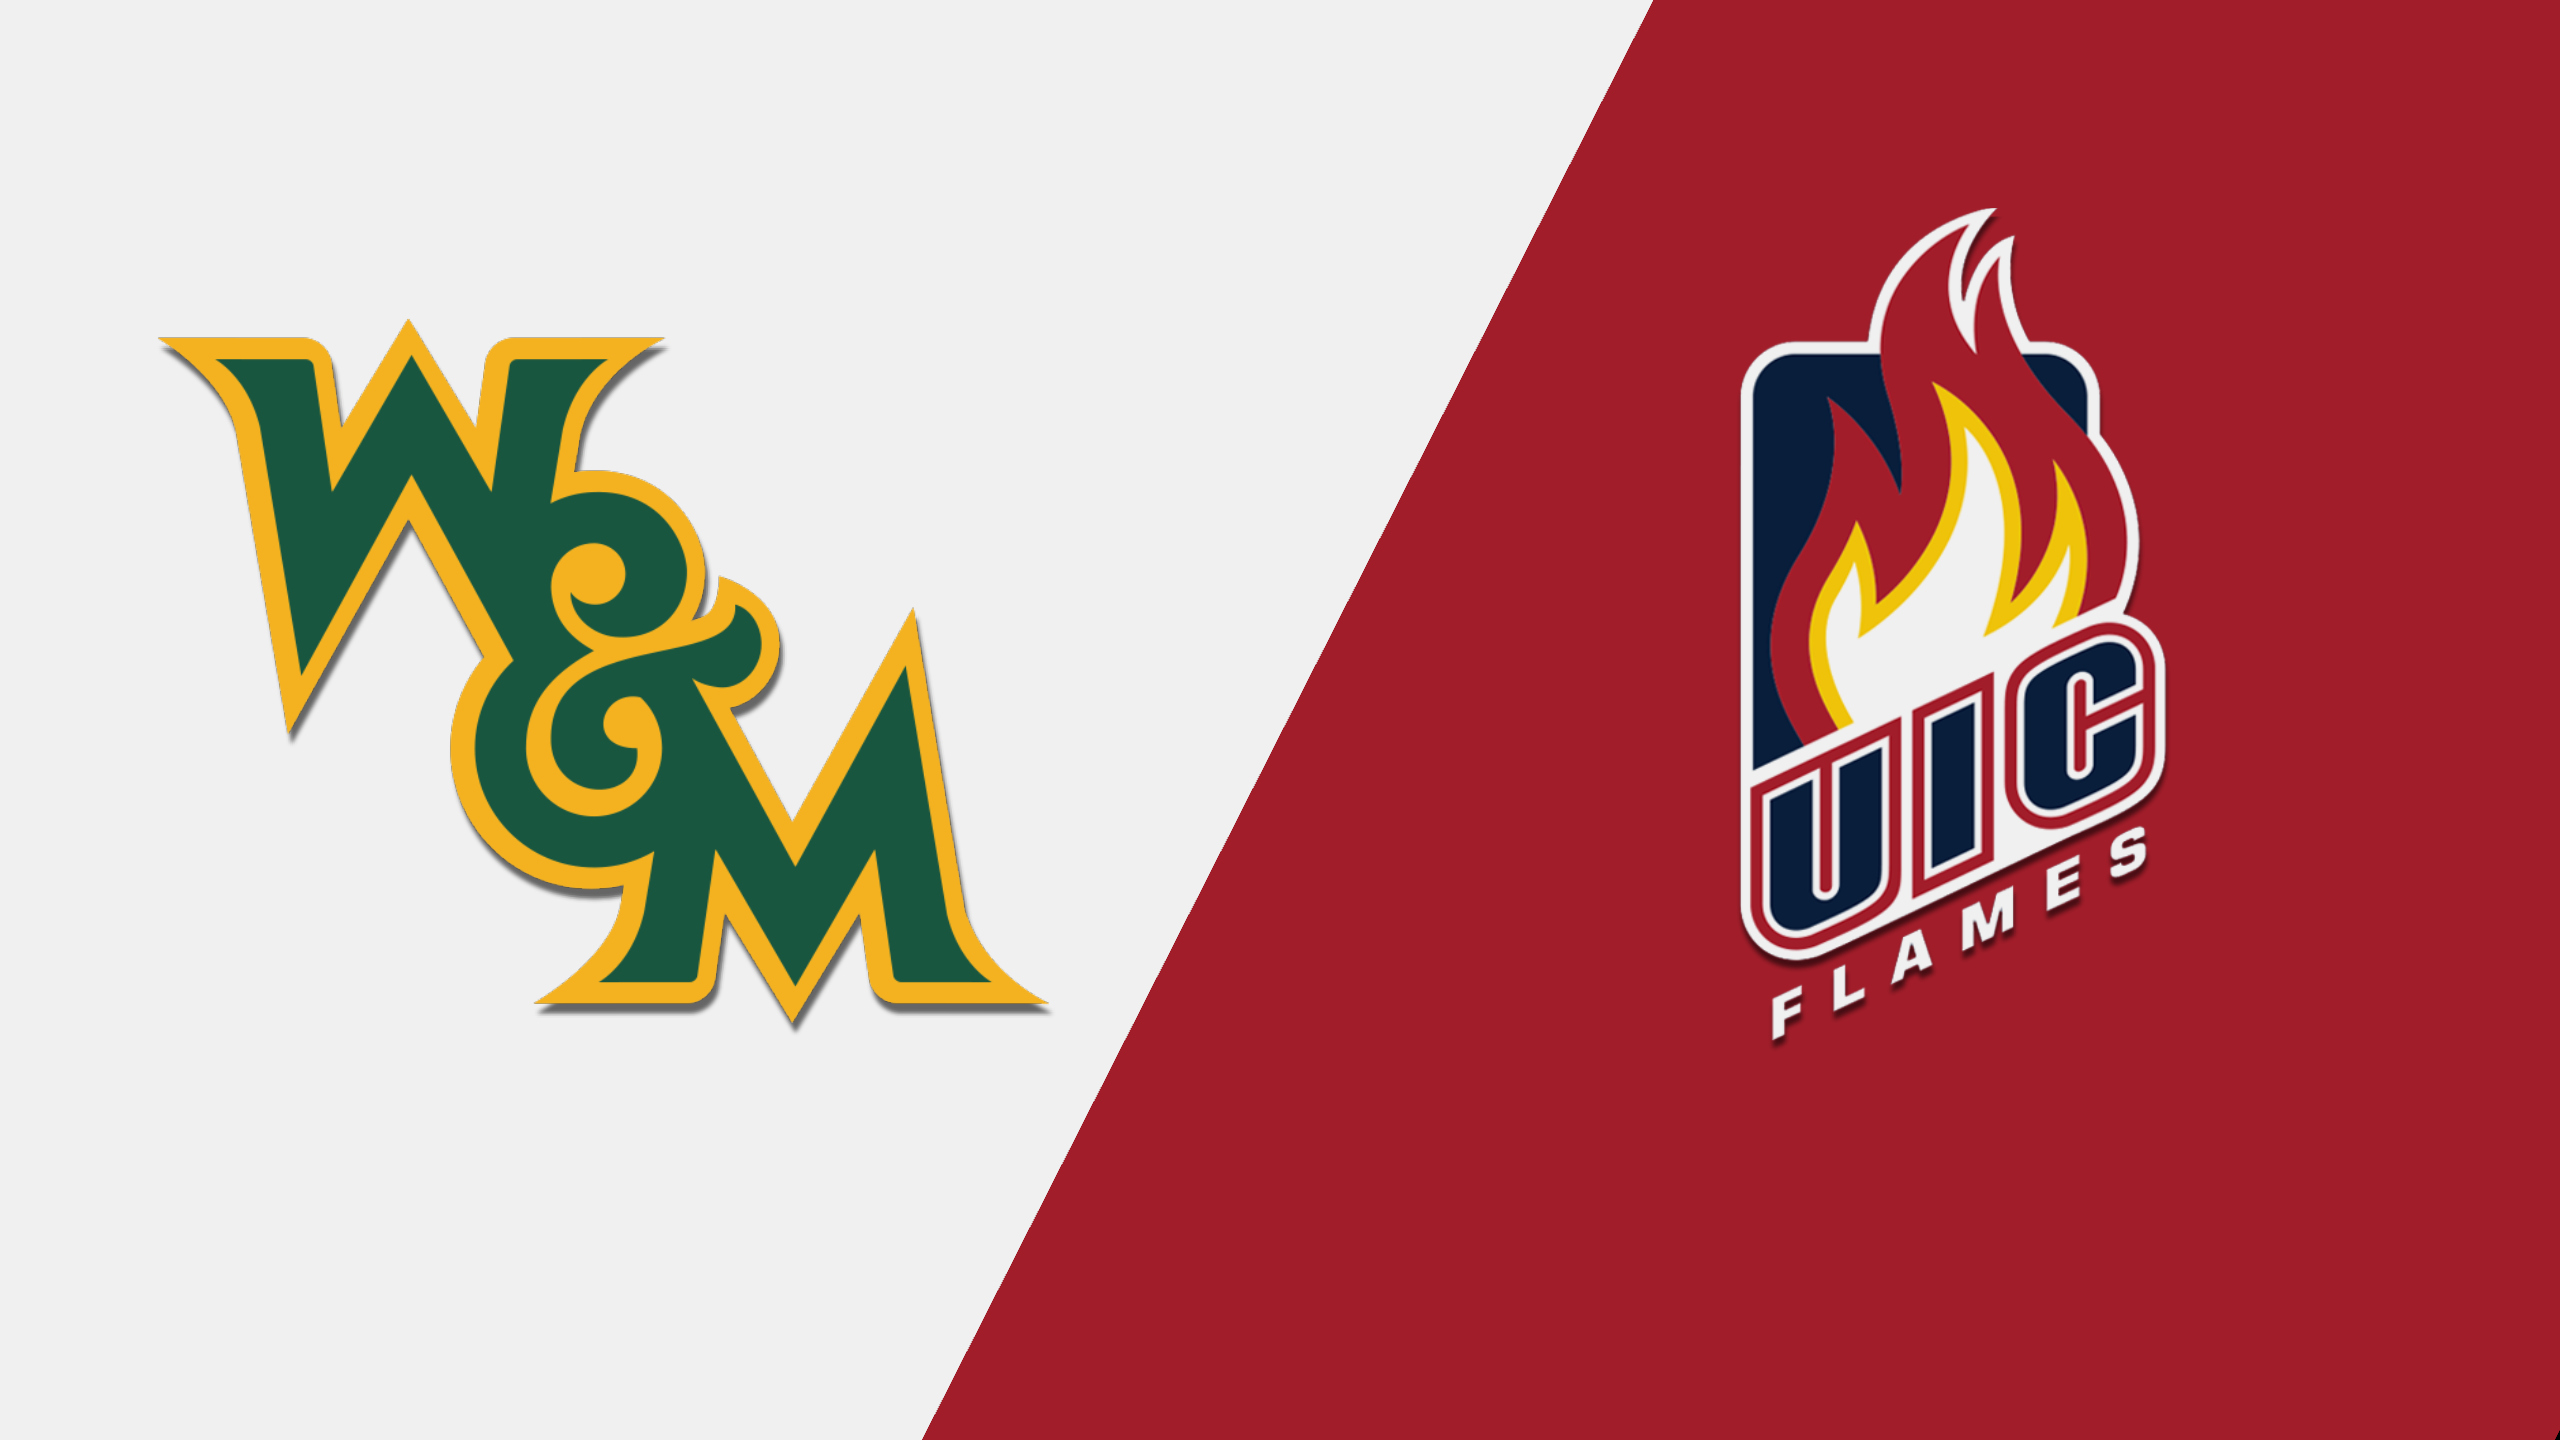 William & Mary vs. UIC (M Basketball)